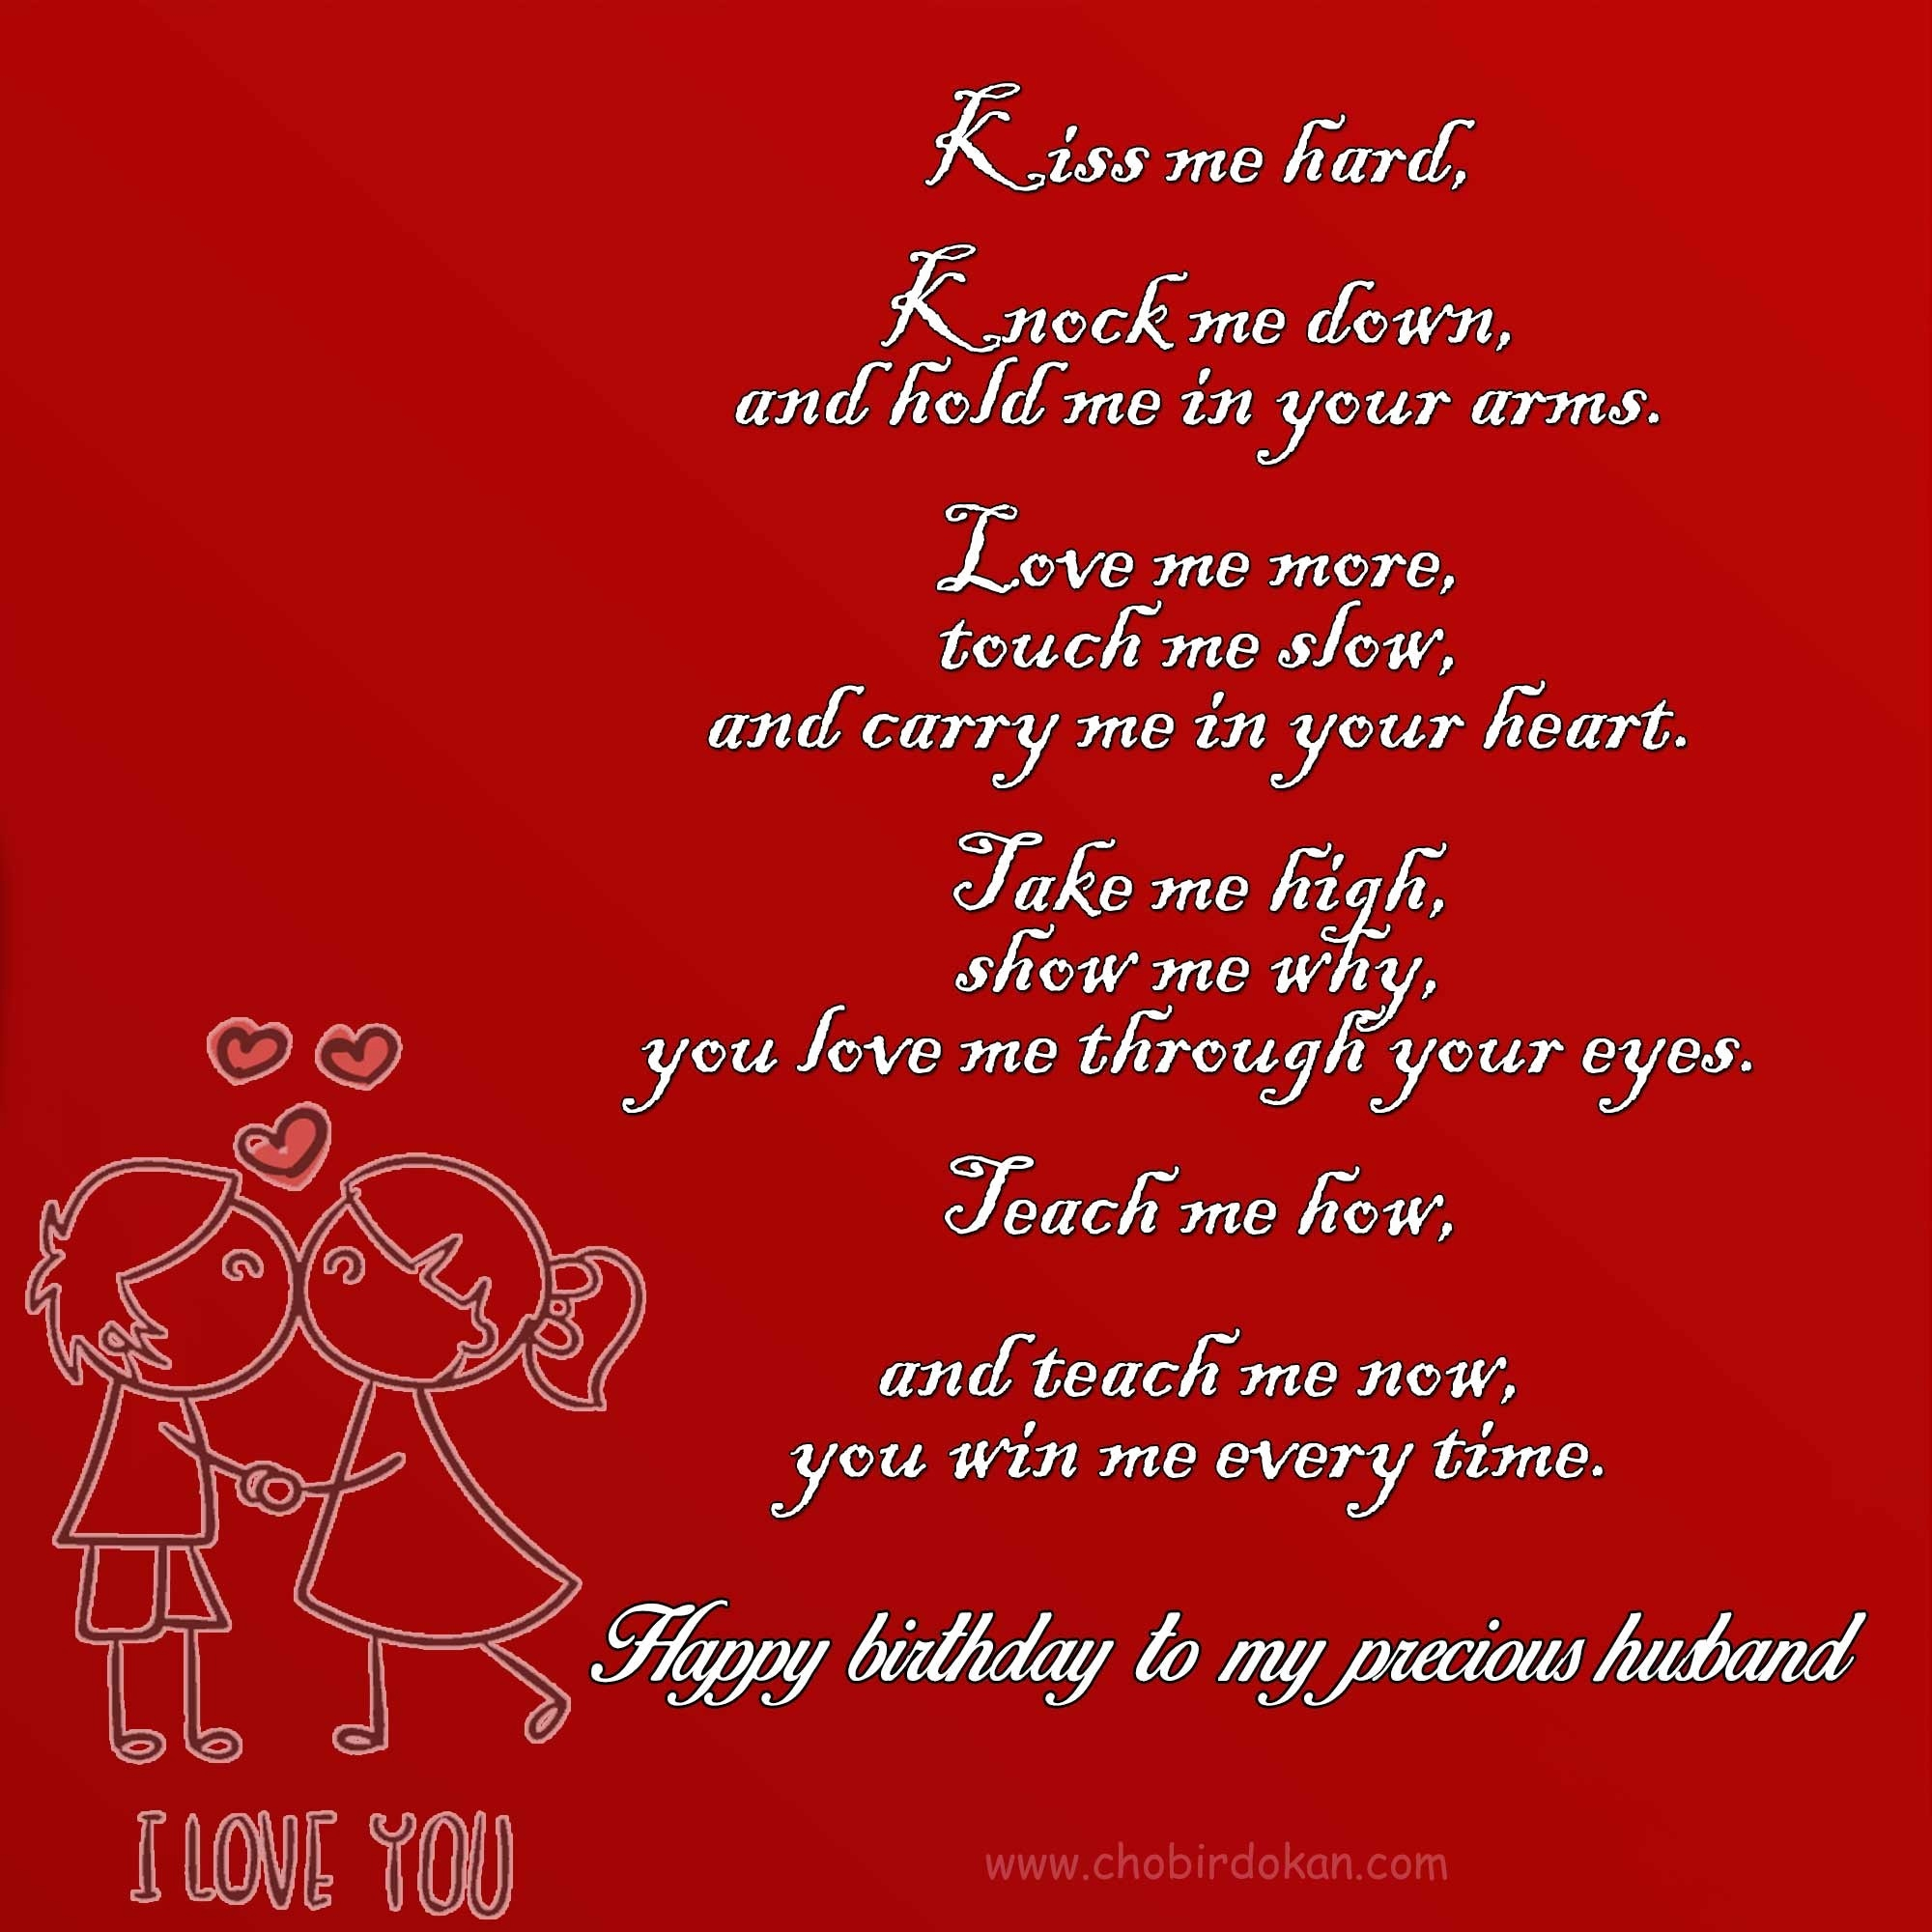 happy birthday poem to my girlfriend ; poem-for-girlfriend-unique-quotes-for-husband-birthday-awesome-happy-birthday-poems-for-him-of-poem-for-girlfriend